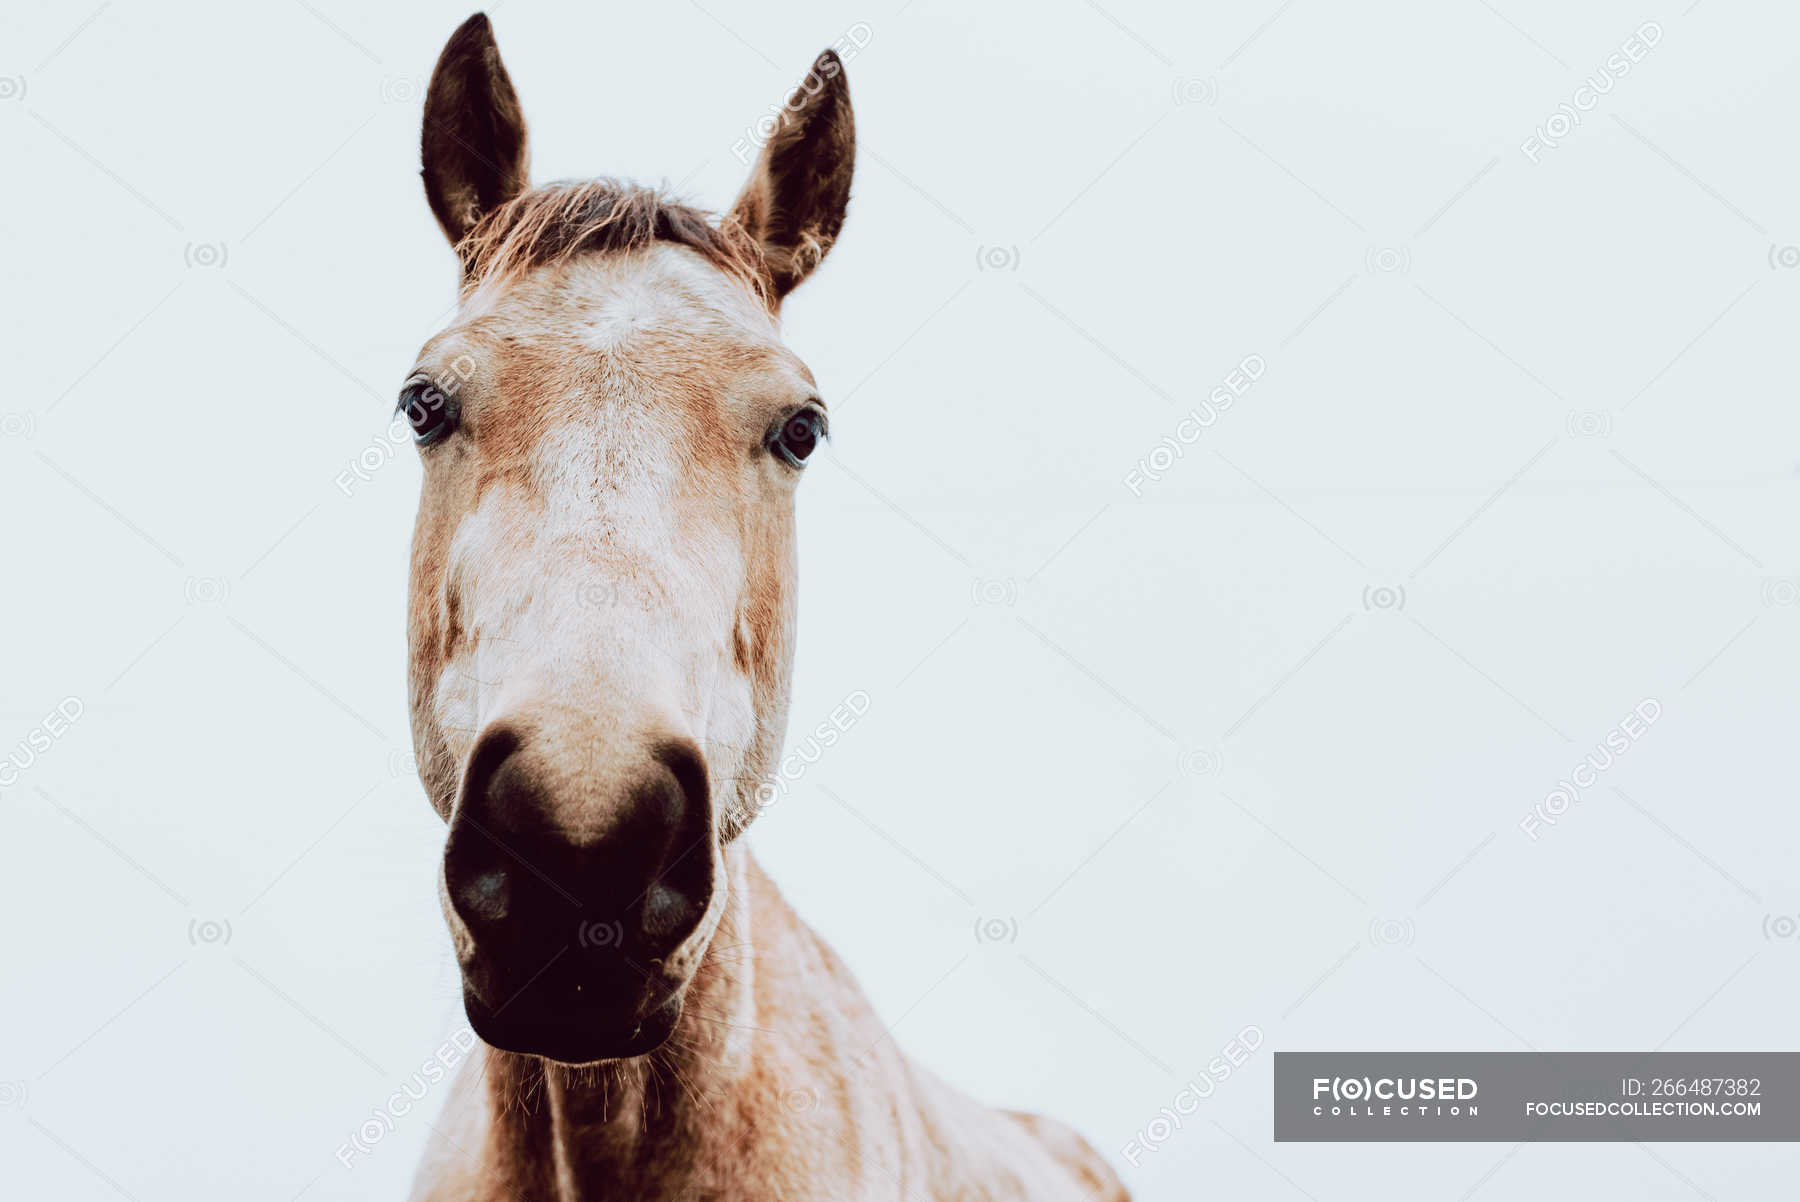 Close Up Of Horse On White Background Looking At Camera Graze Close Up Stock Photo 266487382